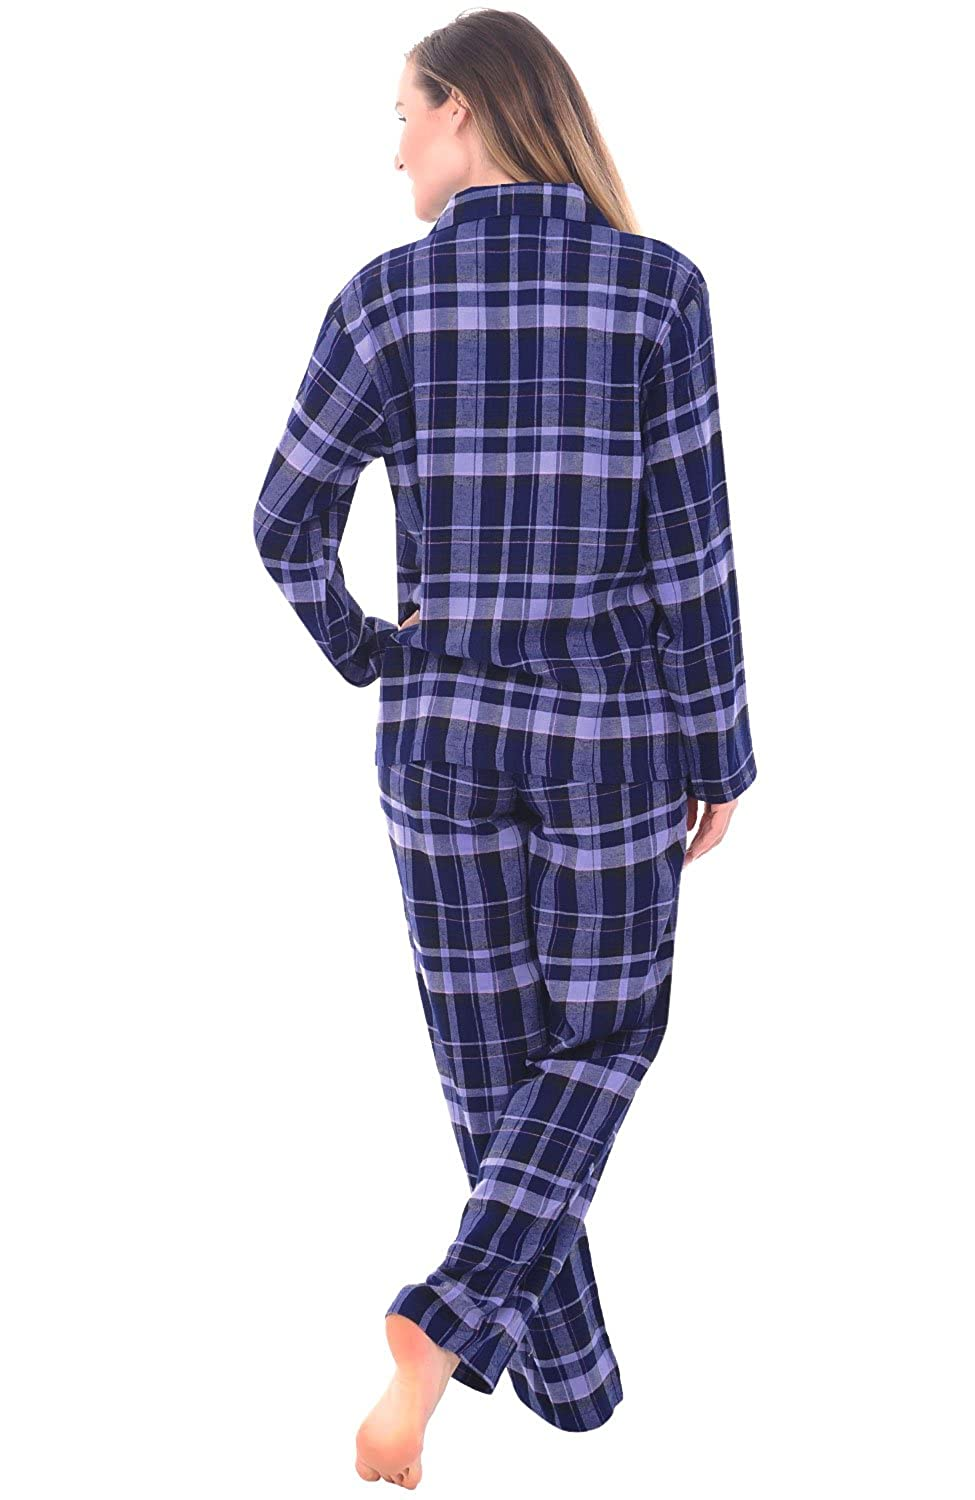 Alexander Del Rossa Womens Flannel Pajamas, Long Cotton Pj Set, Medium Blue Plaid (A0509Q18MD) at Amazon Womens Clothing store: